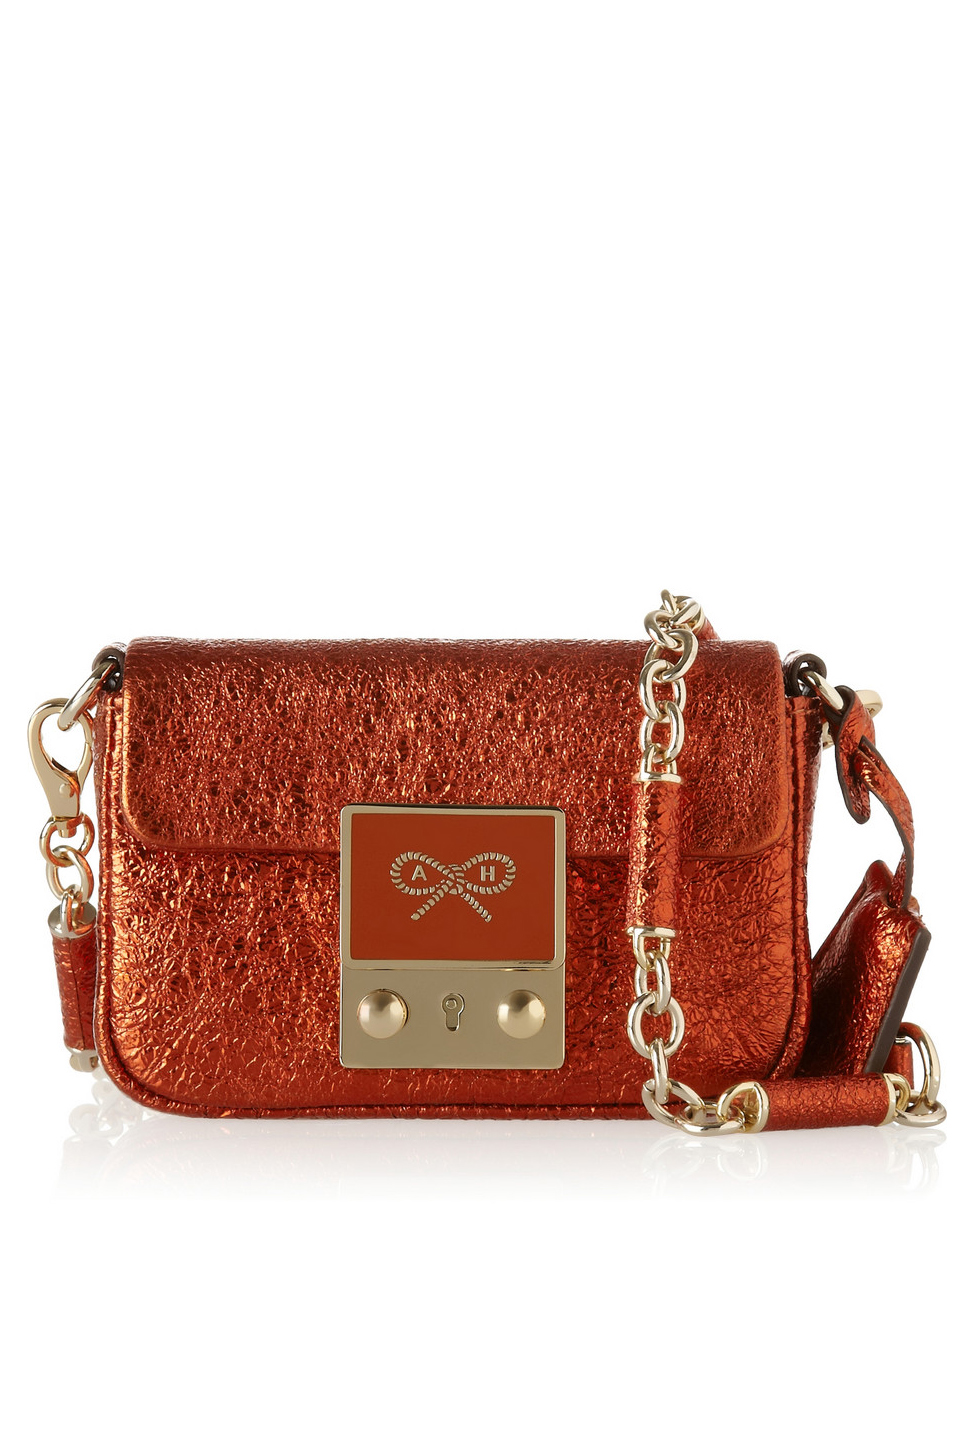 via fashioned by love | Anya Hindmarch Tiny Tim red shoulder bag